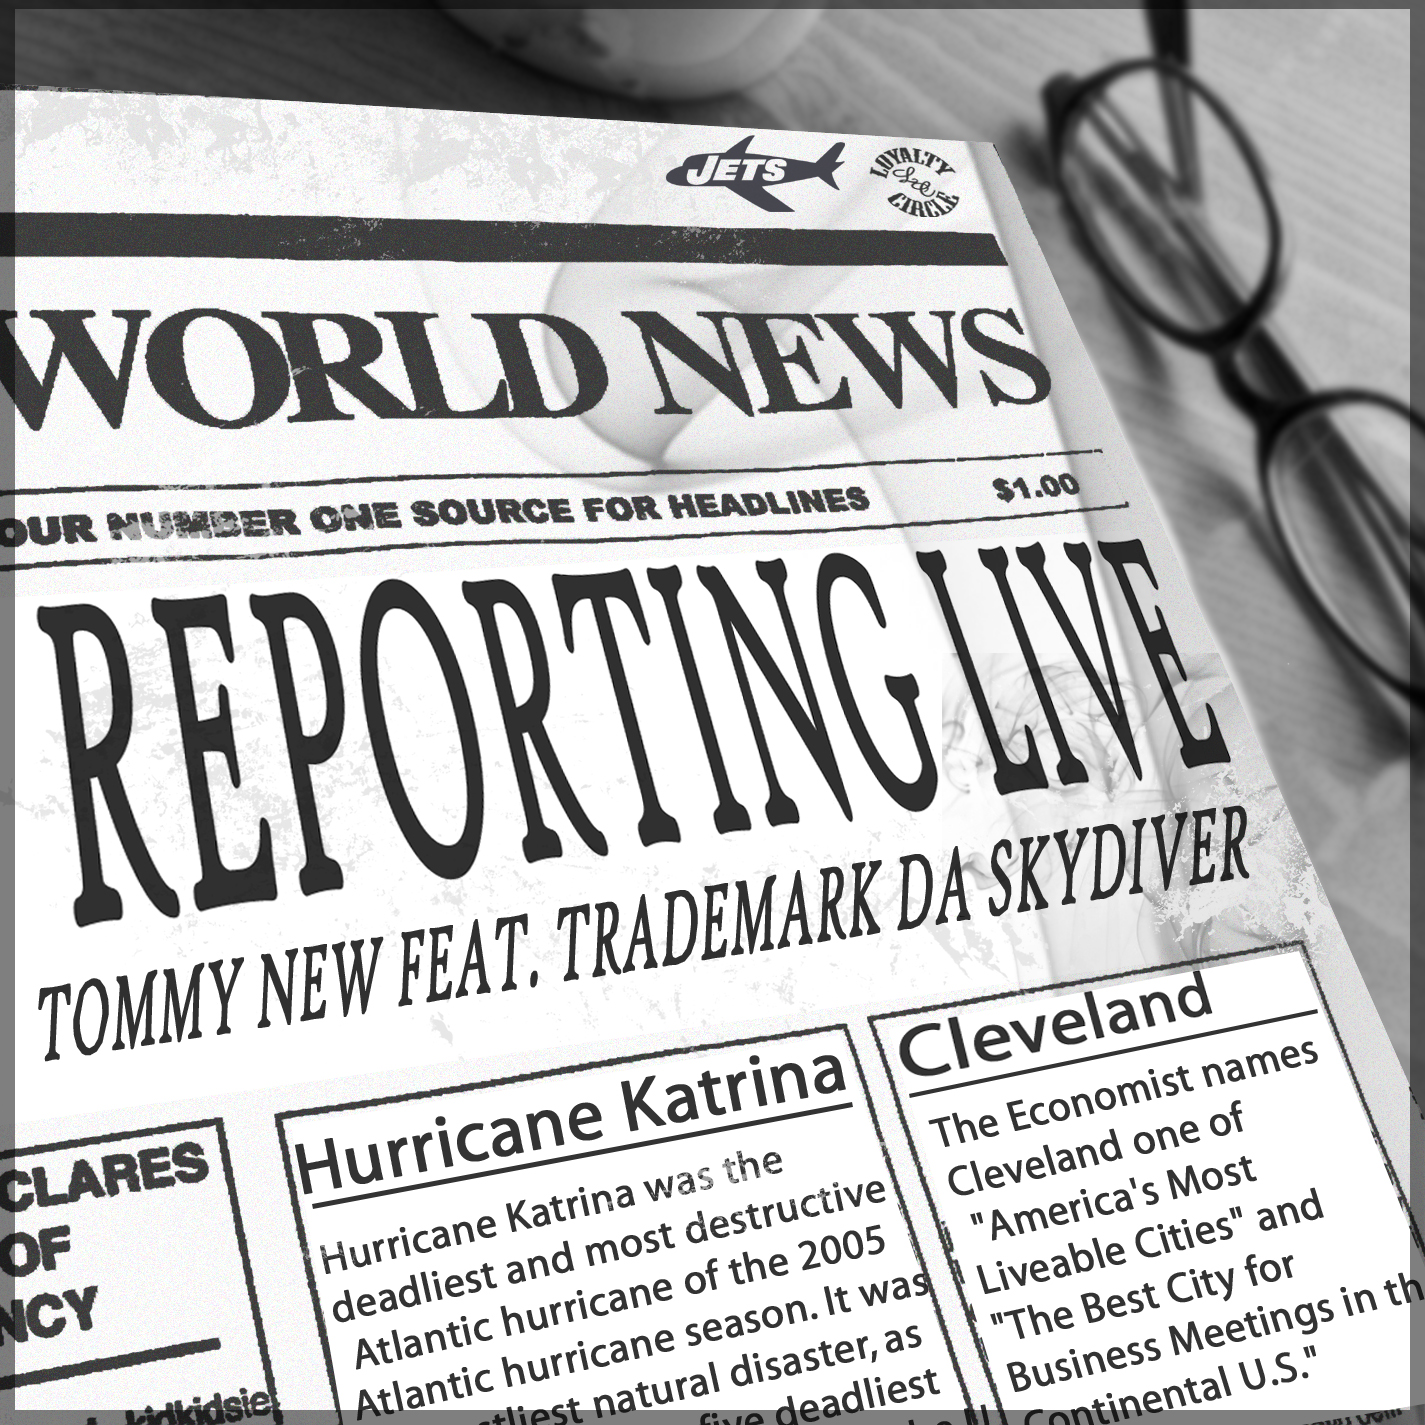 Tommy New Feat. TradeMark Da Skydiver – Reporting Live